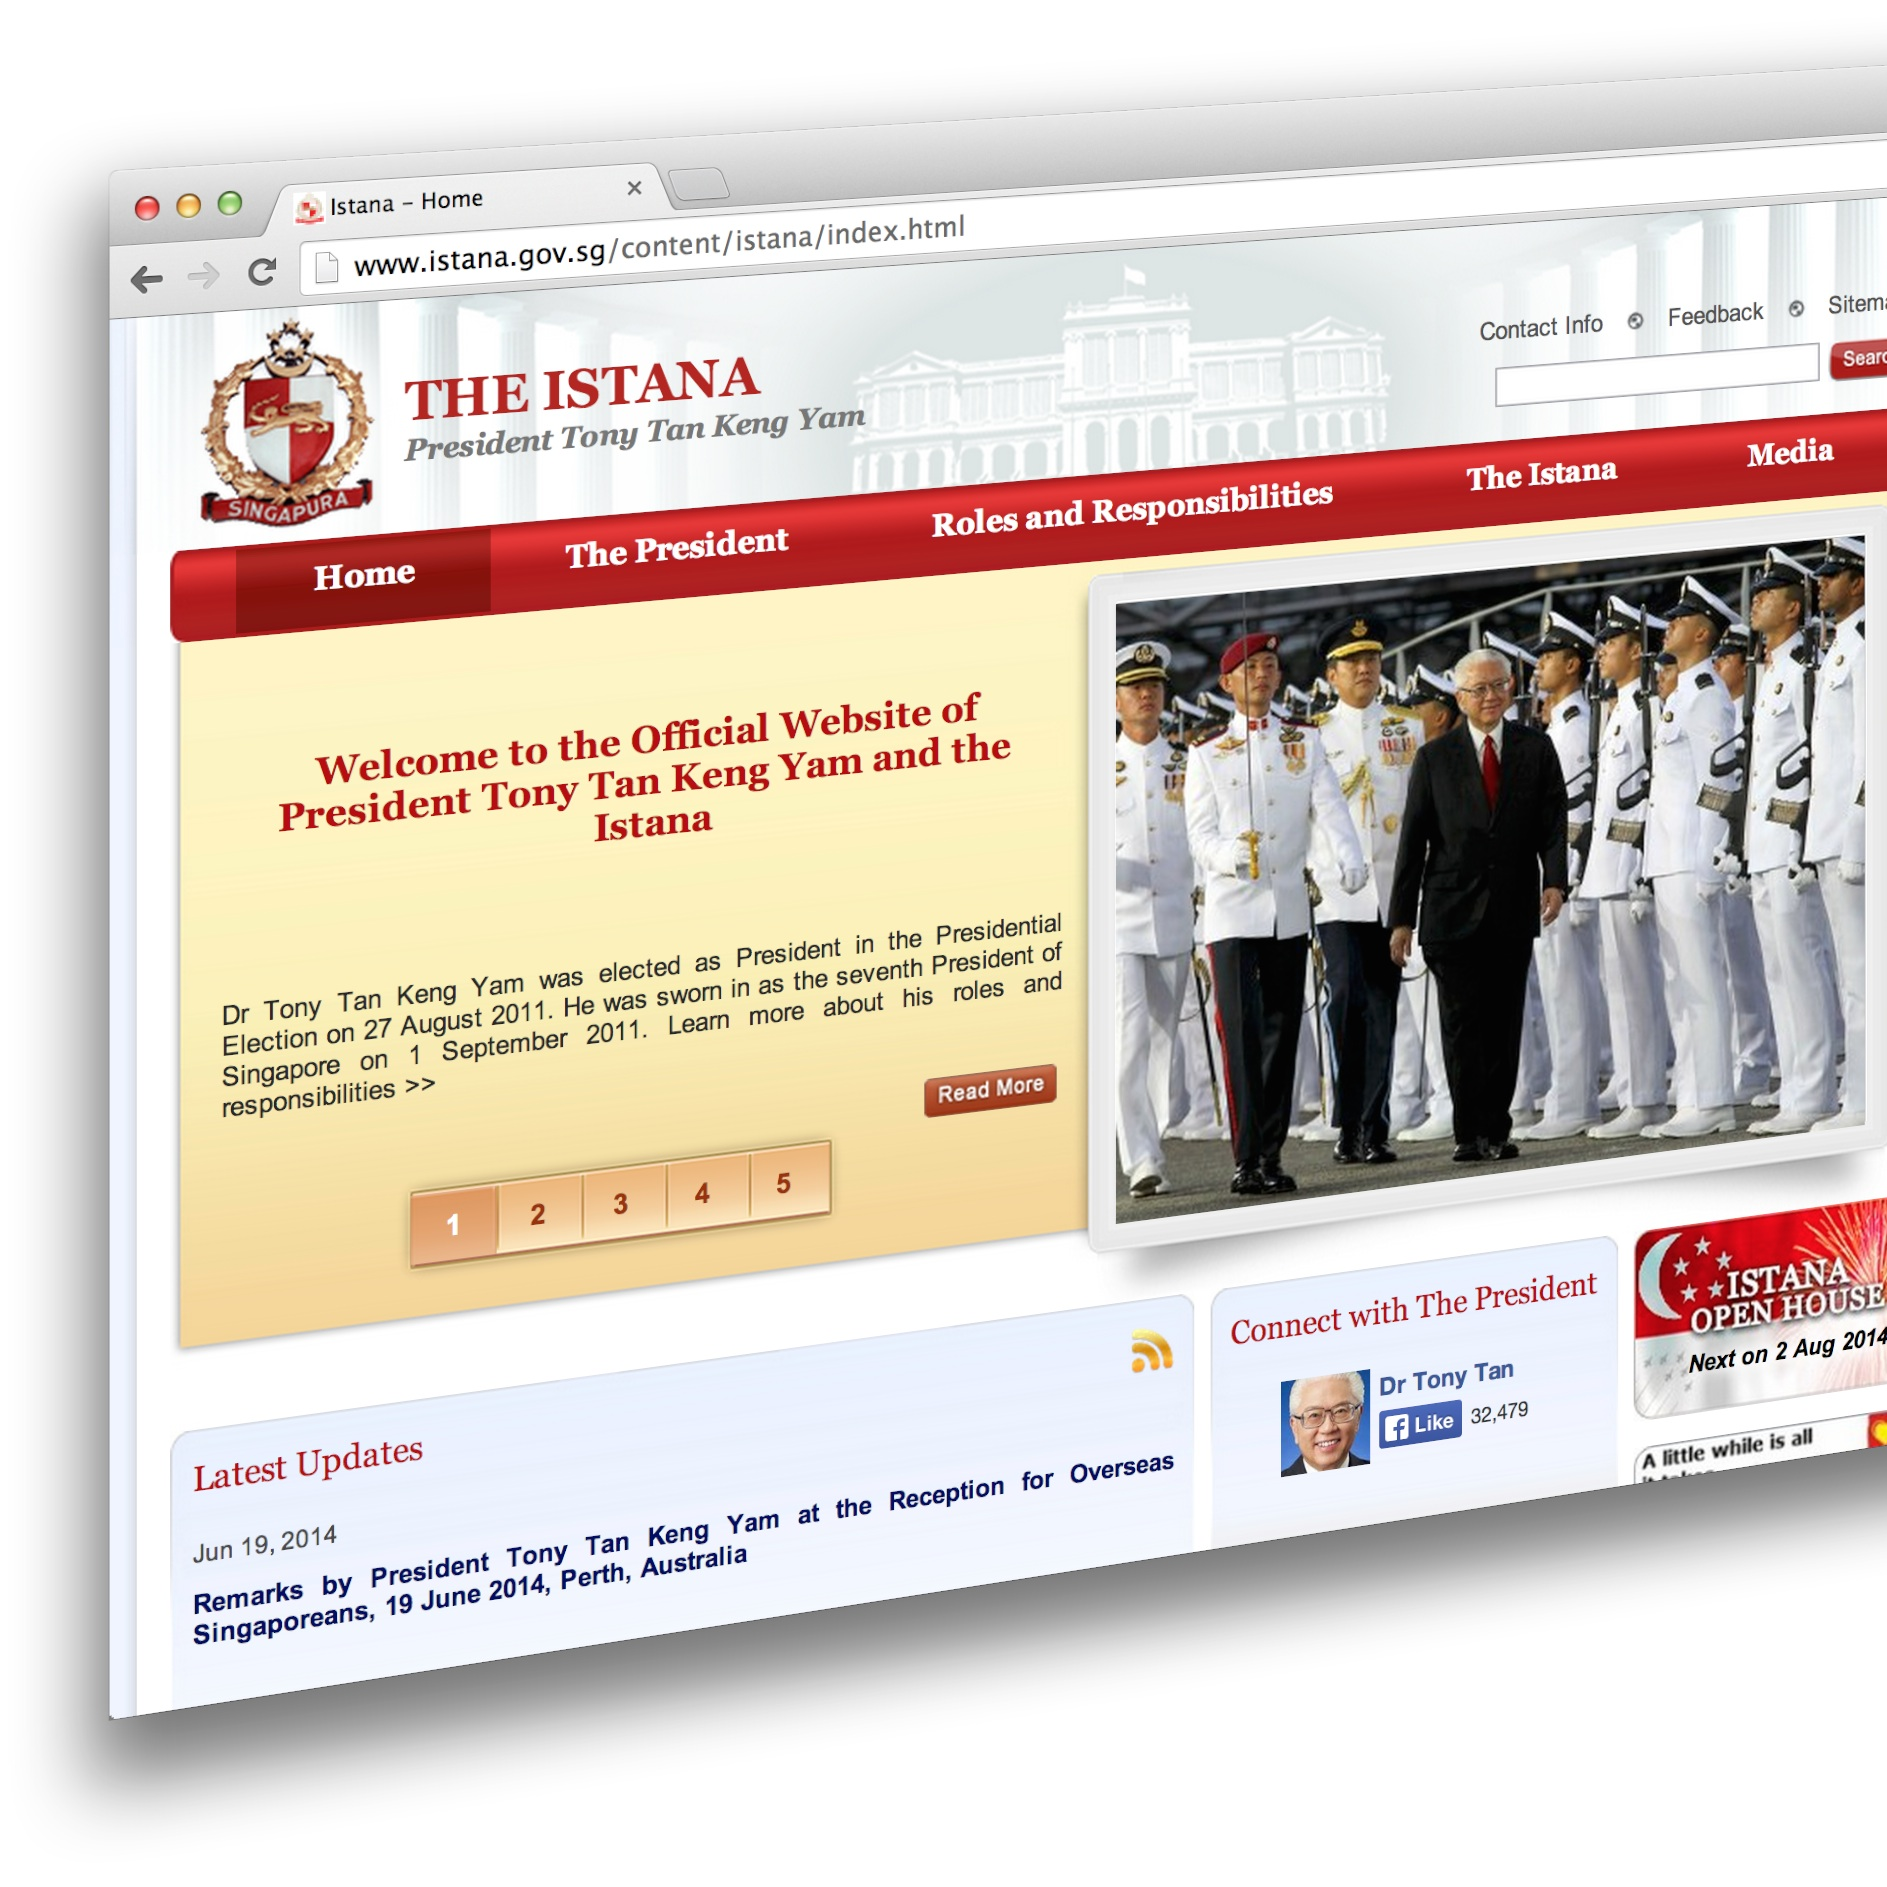 Convicted for XSS Trickery on Istana Website